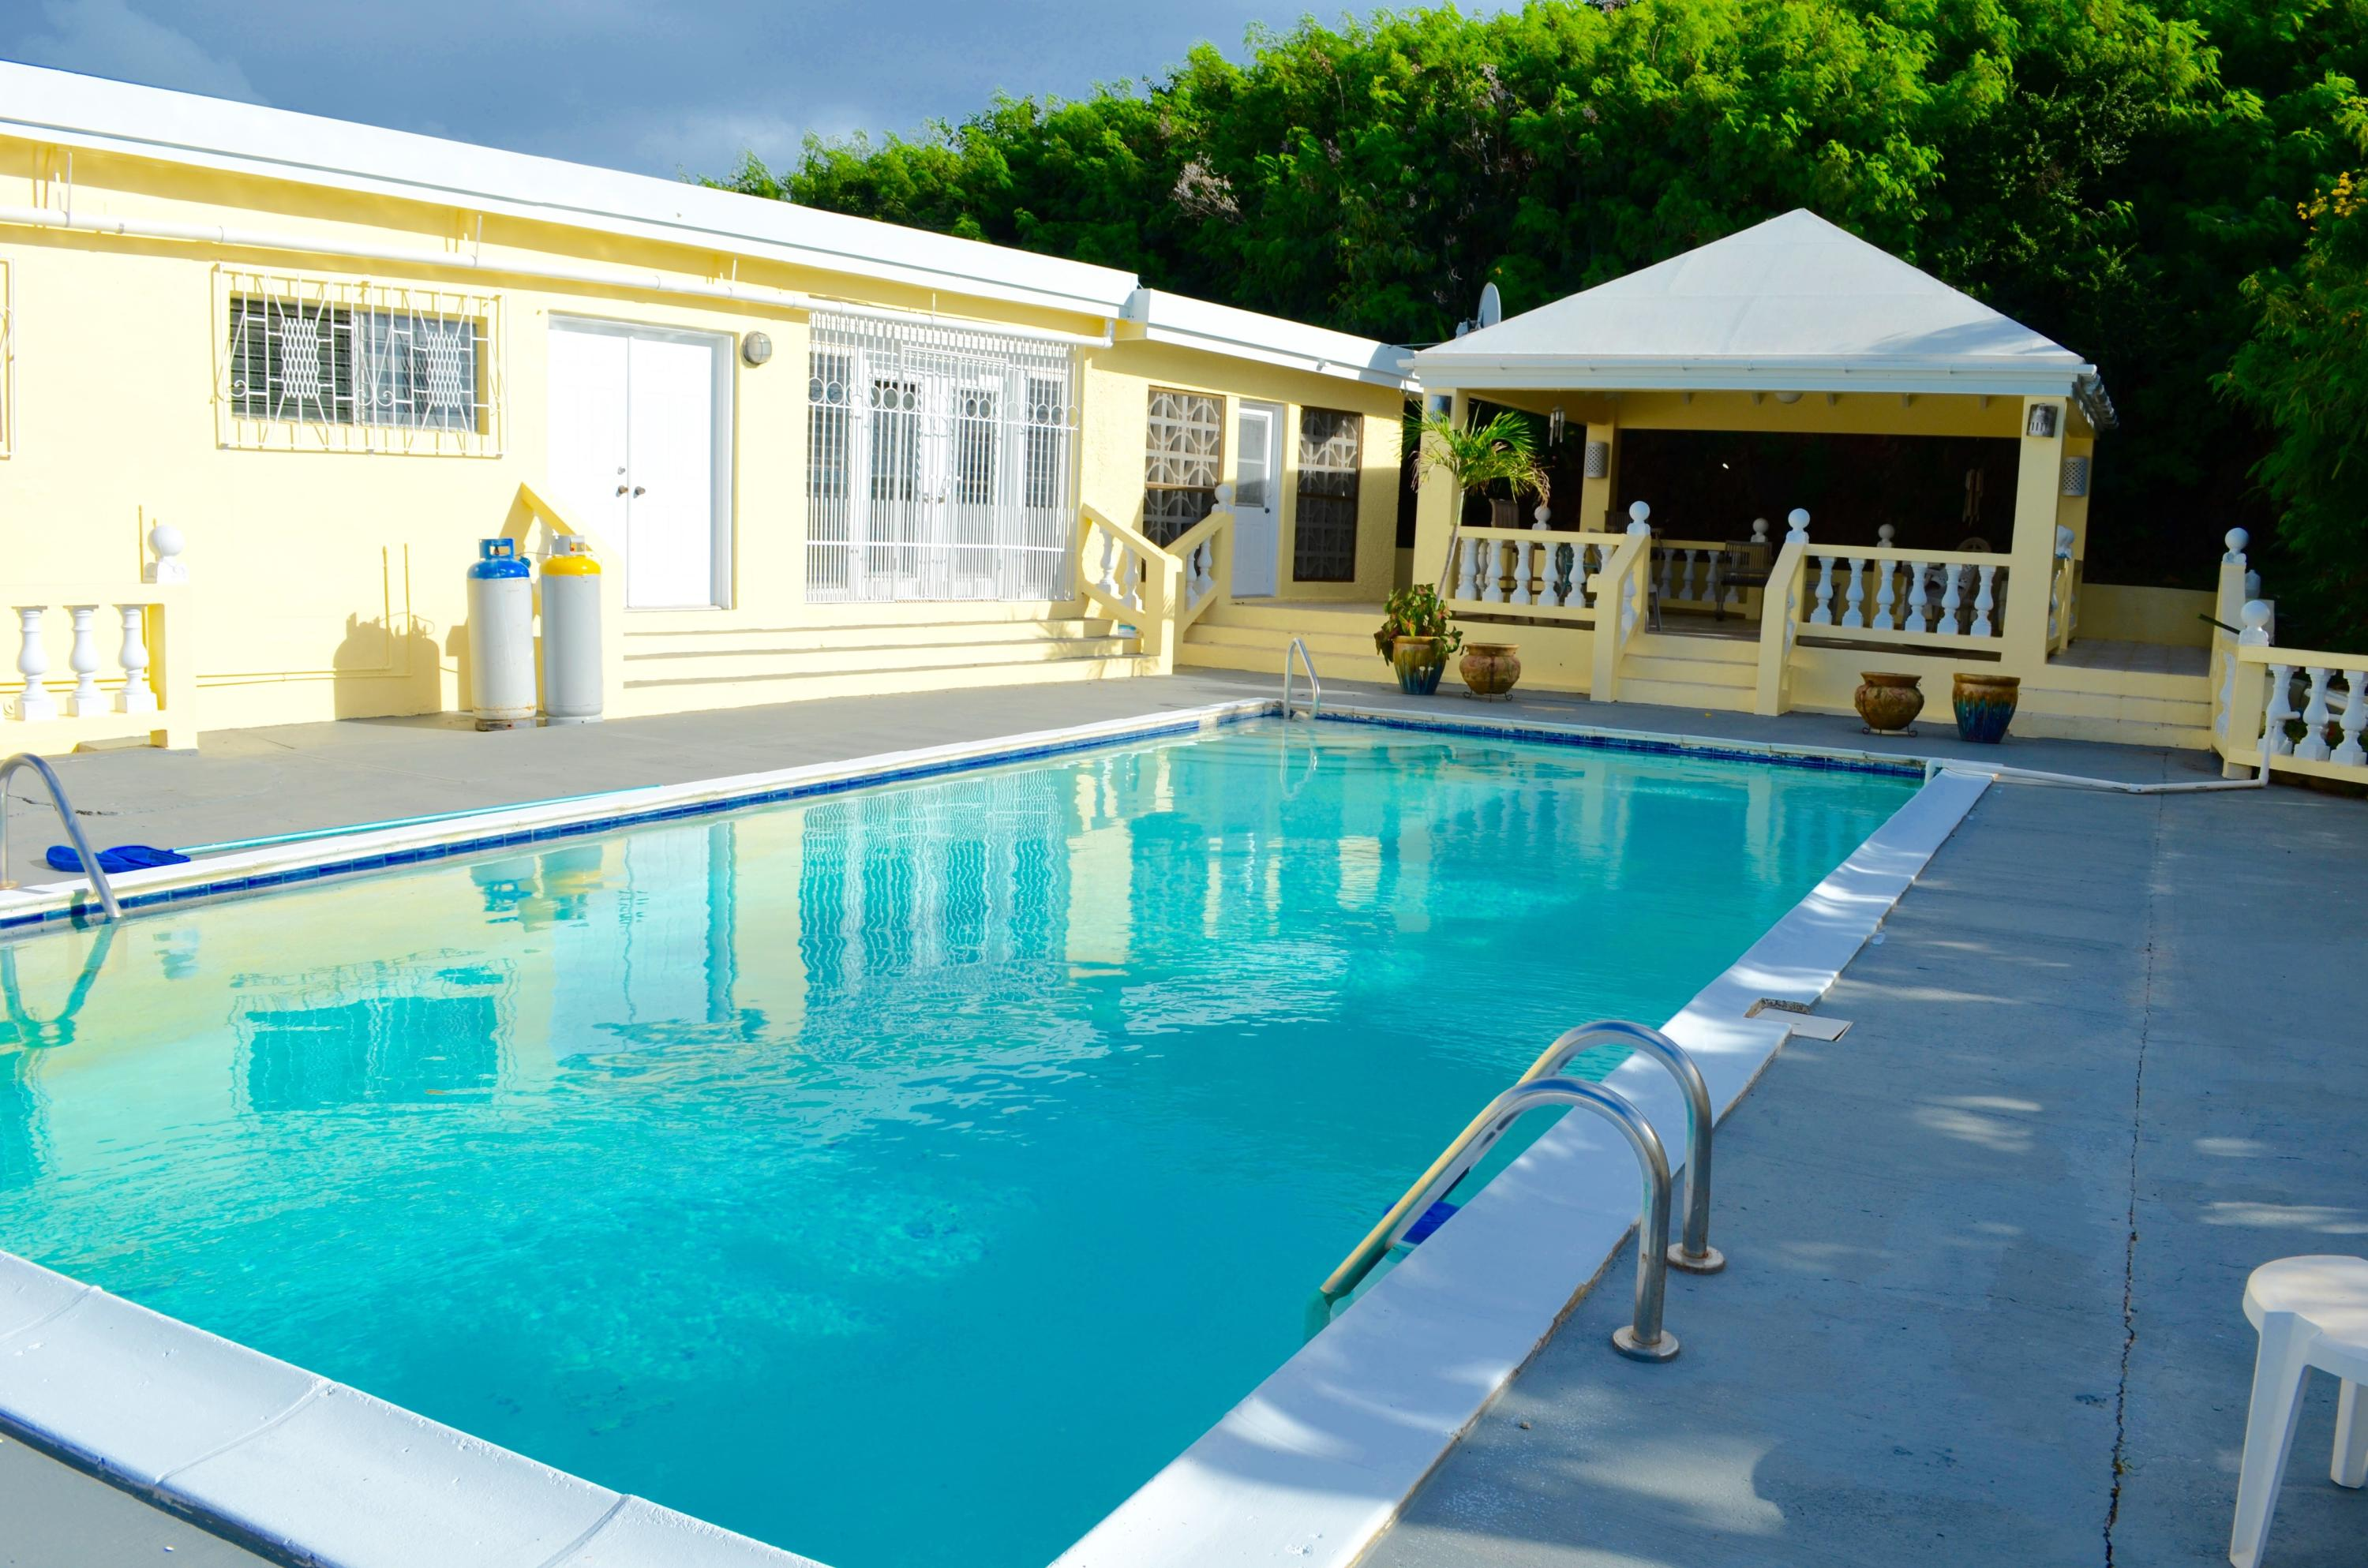 Single Family Home for Sale at 60 Cotton Valley EB 60 Cotton Valley EB St Croix, Virgin Islands 00820 United States Virgin Islands